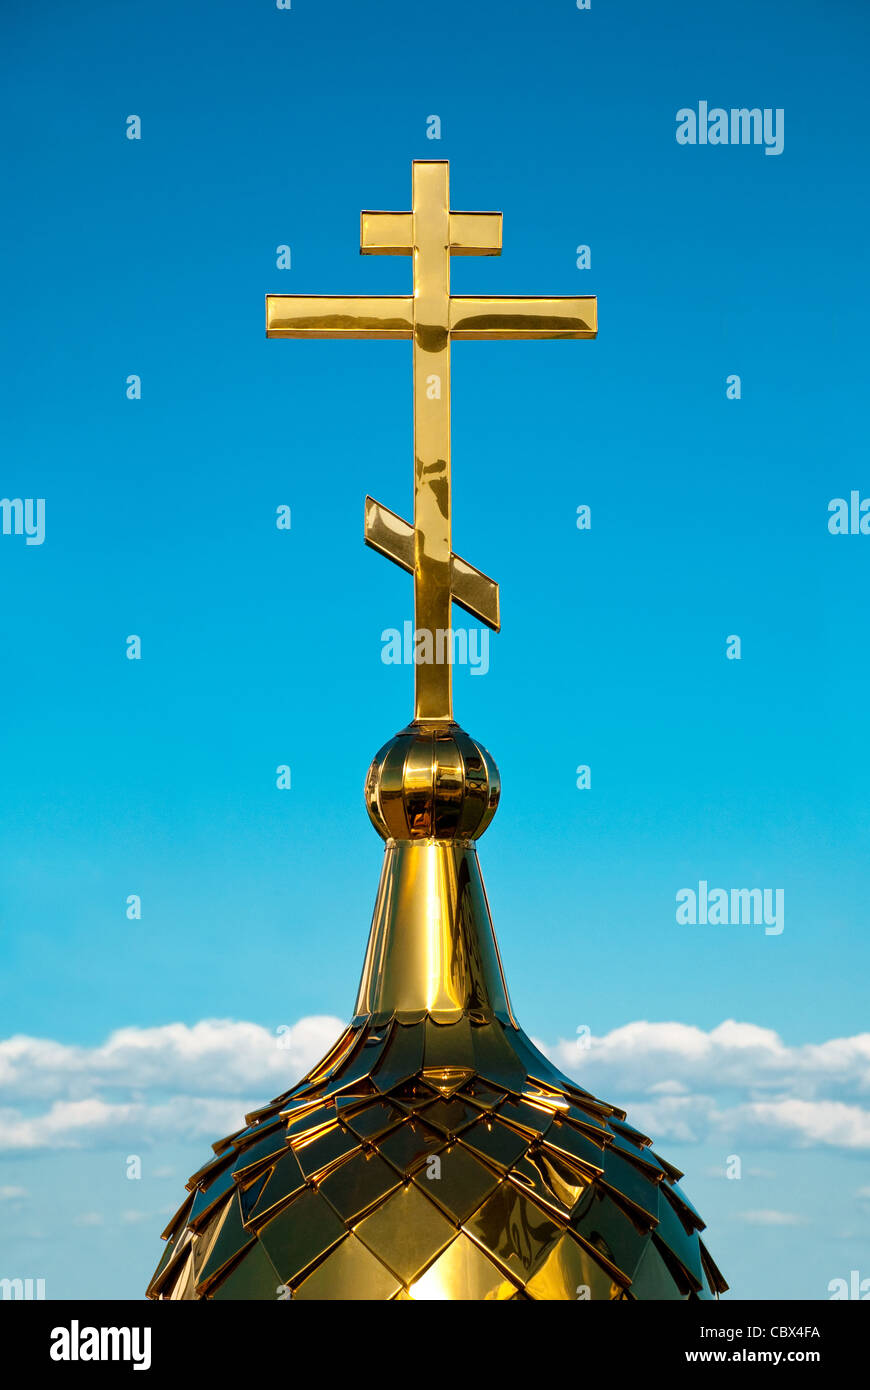 Christianity and all things related to it. - Stock Image